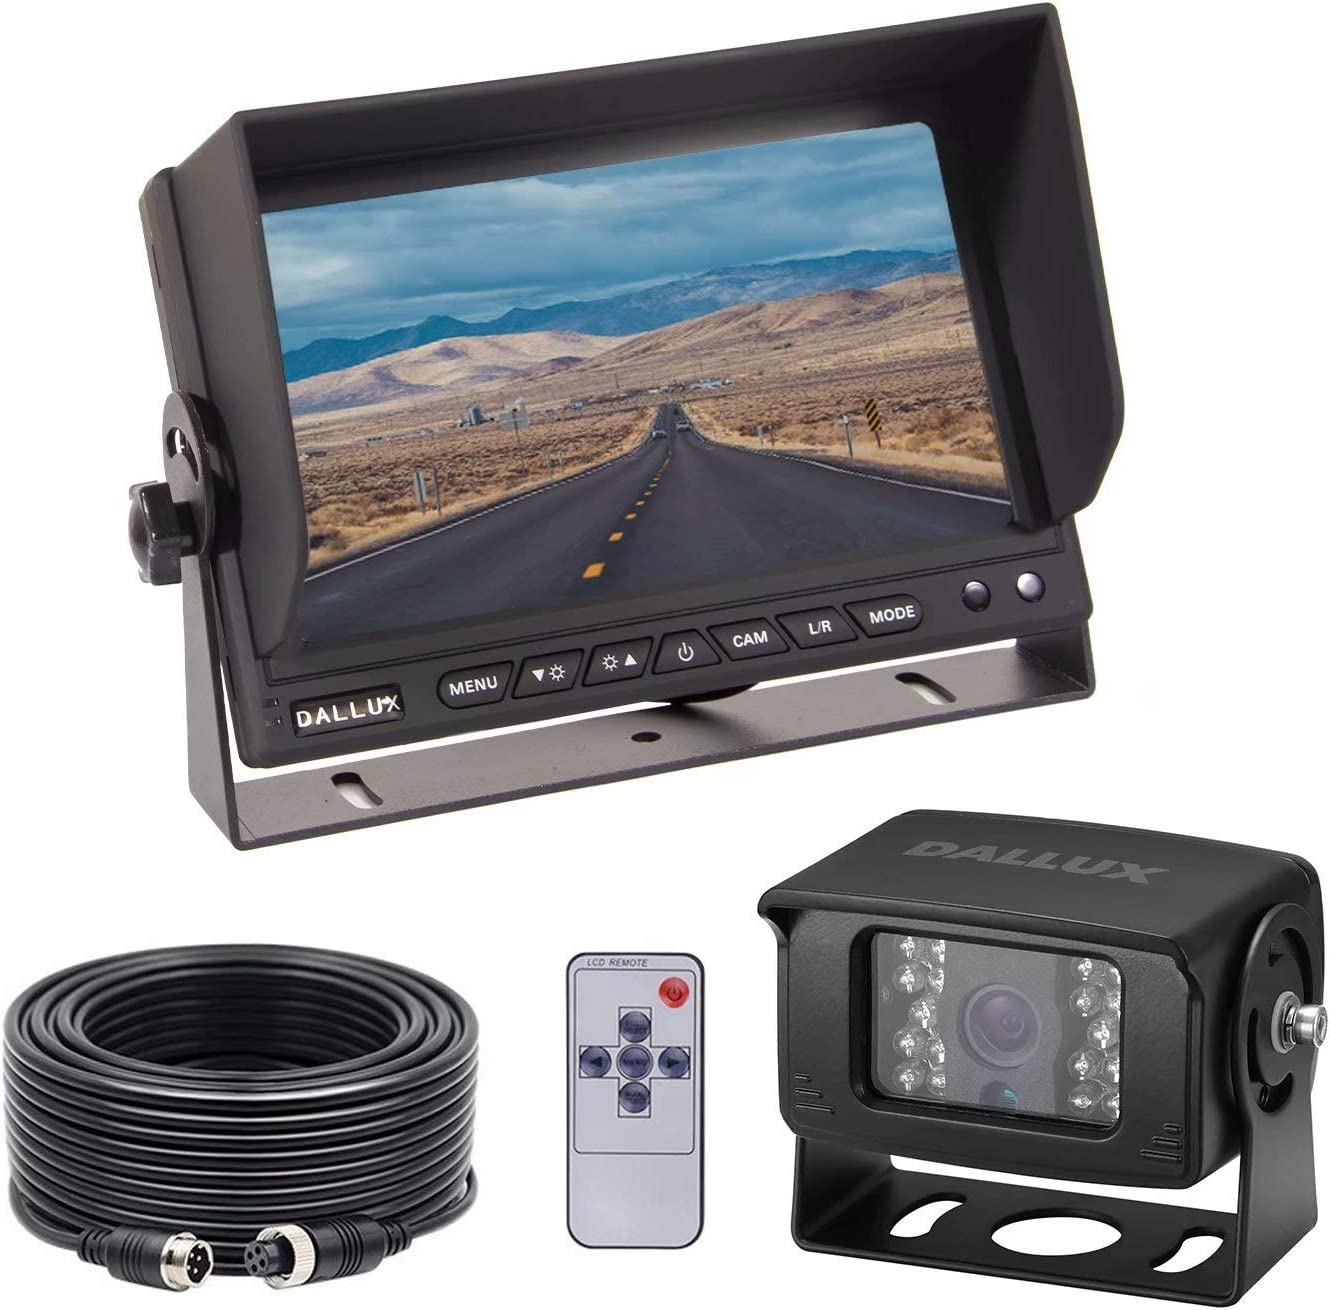 Heavy-Duty Vehicle Truck Bus Backup Camera System, Waterproof Night Vision Rear View Camera with 7 inch Monitor+66ft 4 PIN Camera Cable for Bus Truck Van Trailer RV Campers Motor Home(12V 24V)